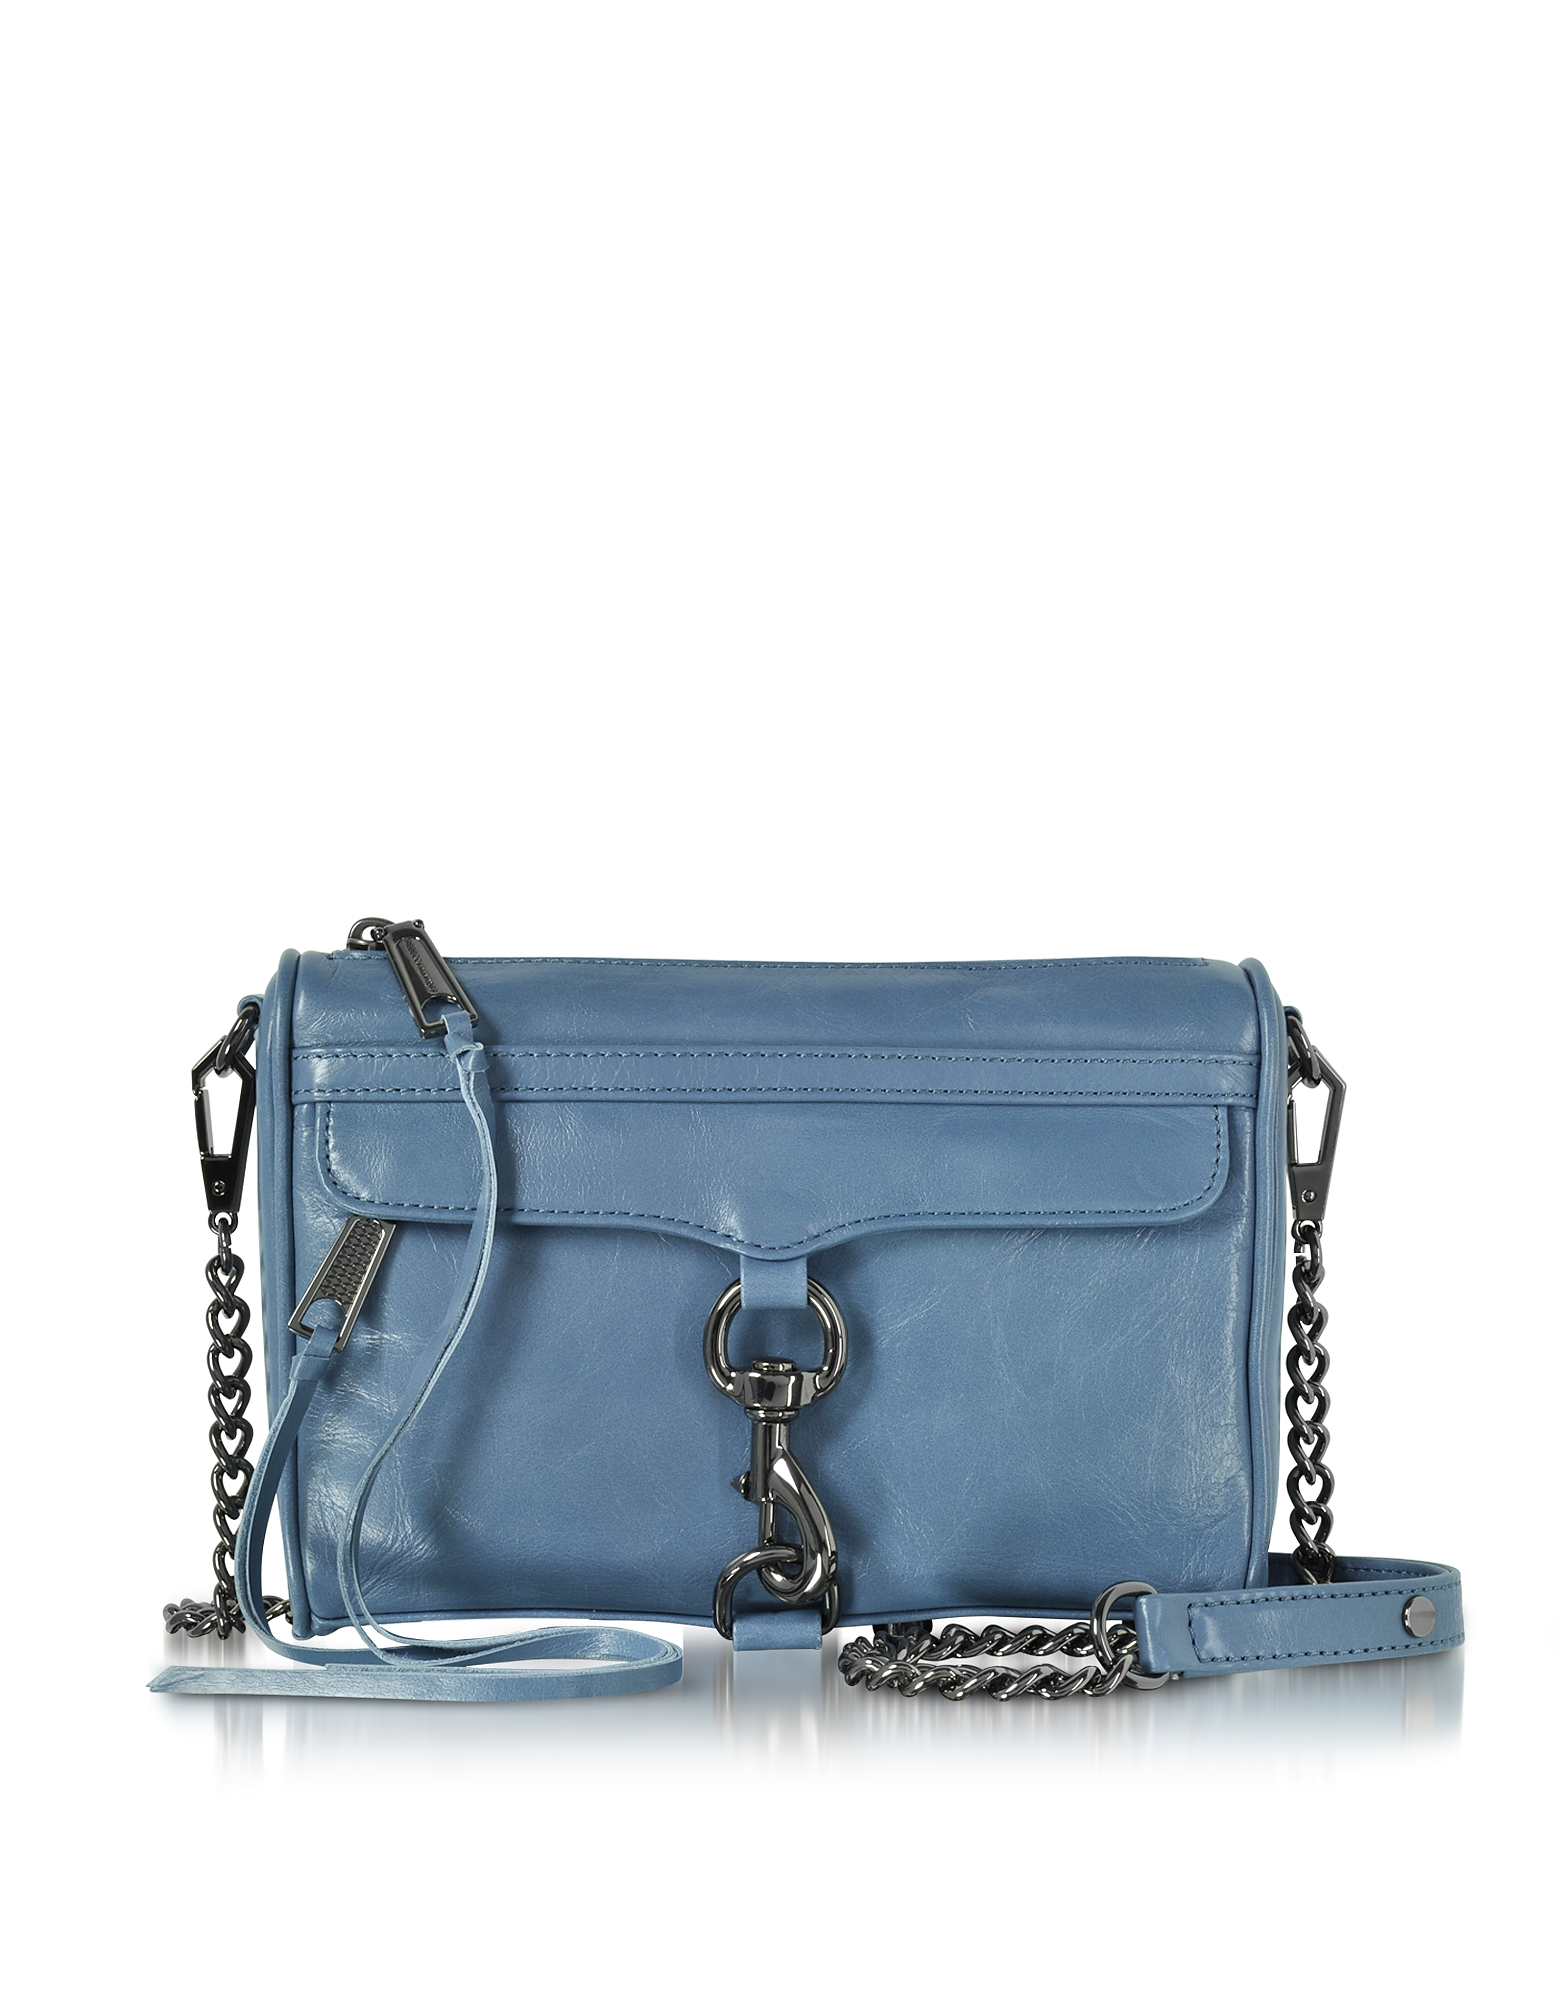 Rebecca Minkoff Mini M.A.C. Azure Distressed Leather Crossbody Bag